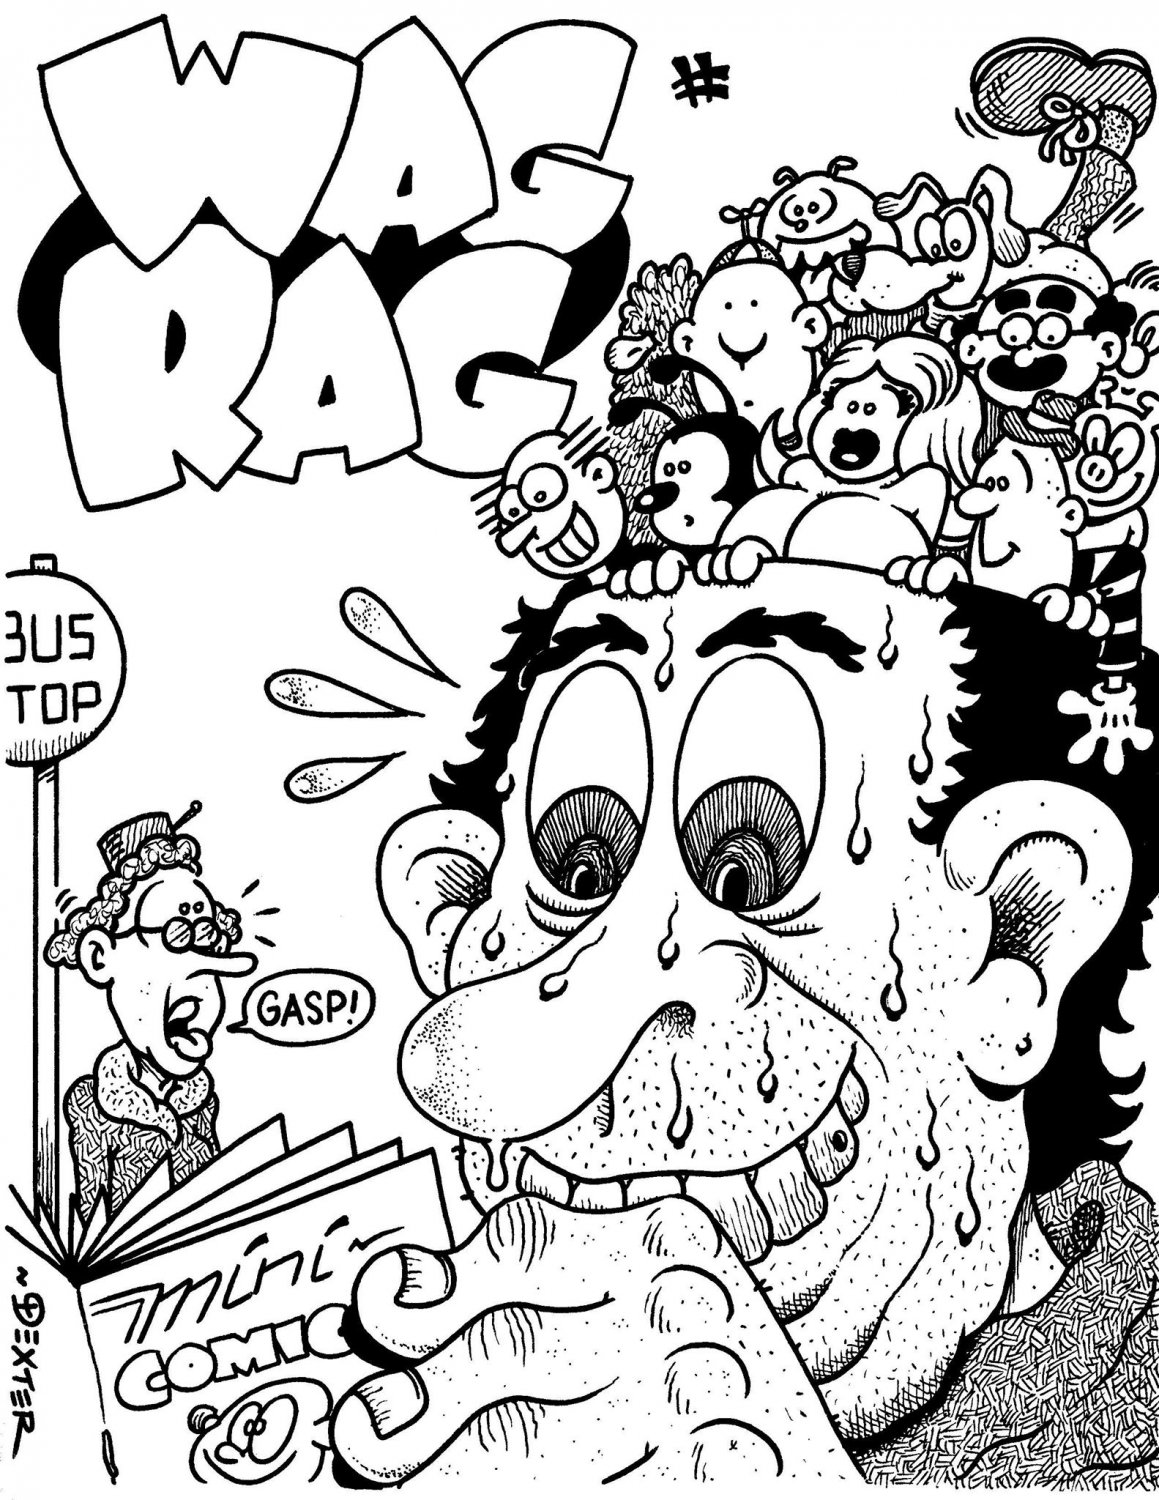 WAG RAG ORIGINAL COVER ART - Dexter Cockburn Original Art